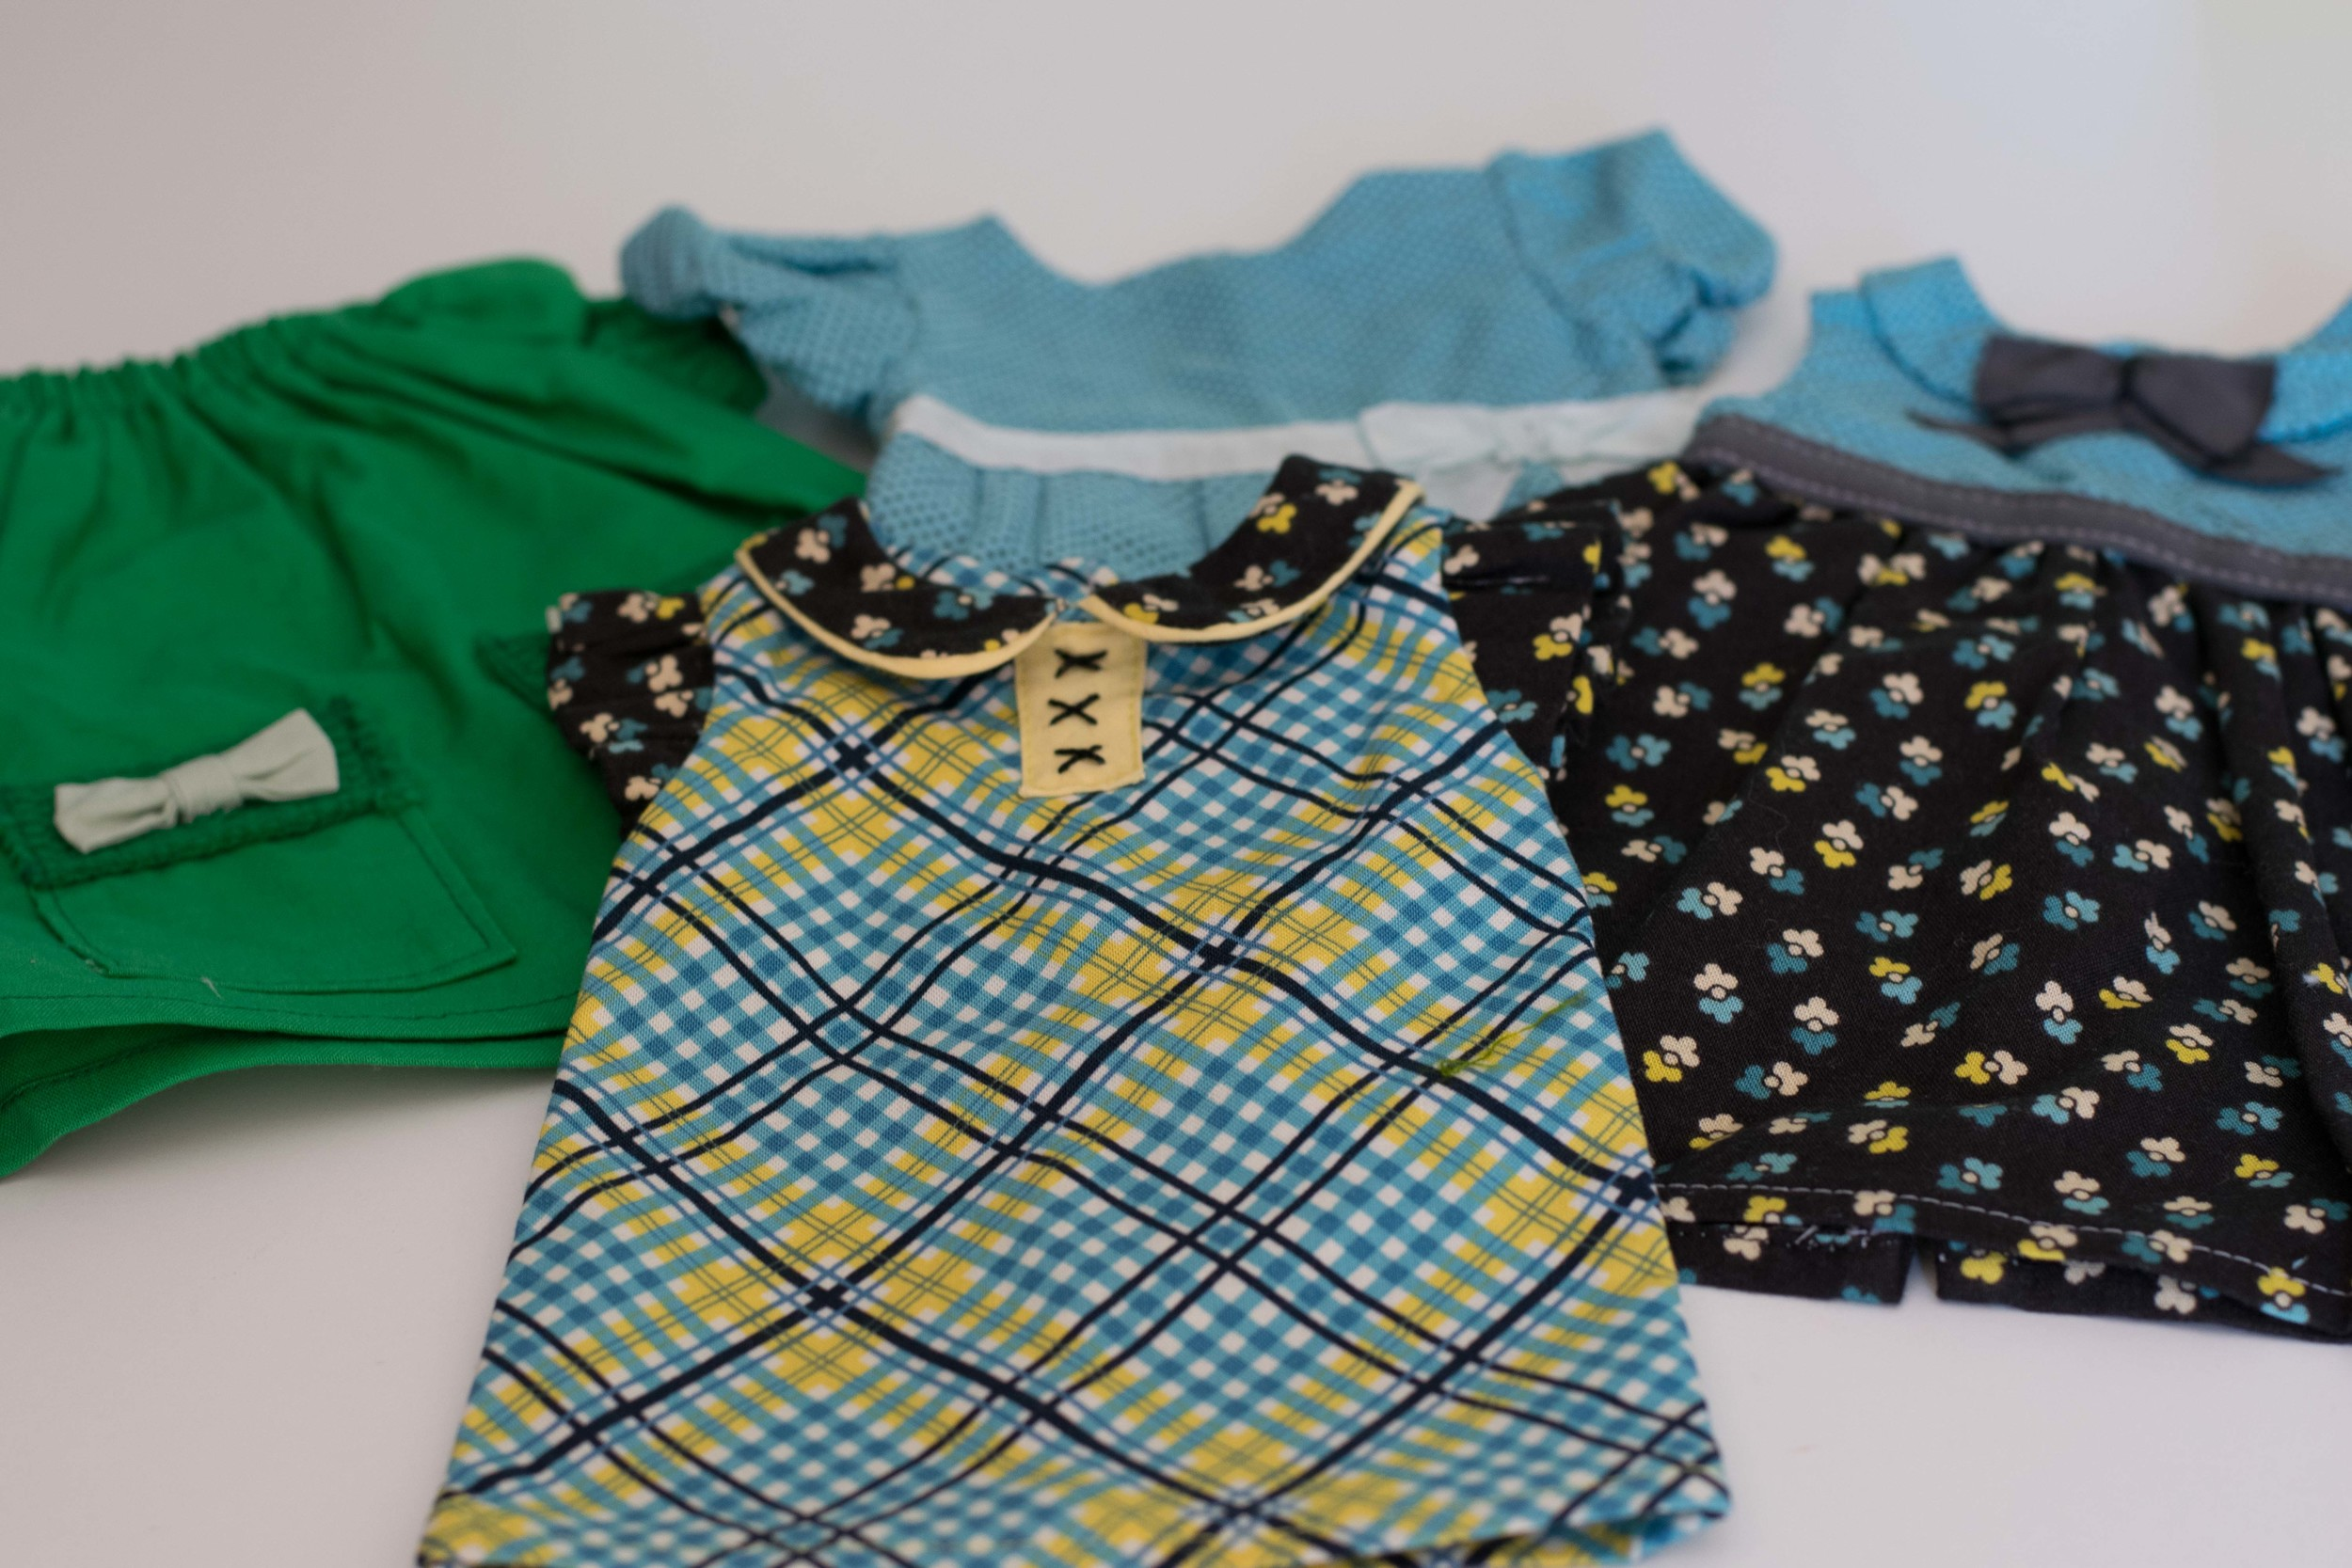 Alison's dresses from one of the Purl Soho packets